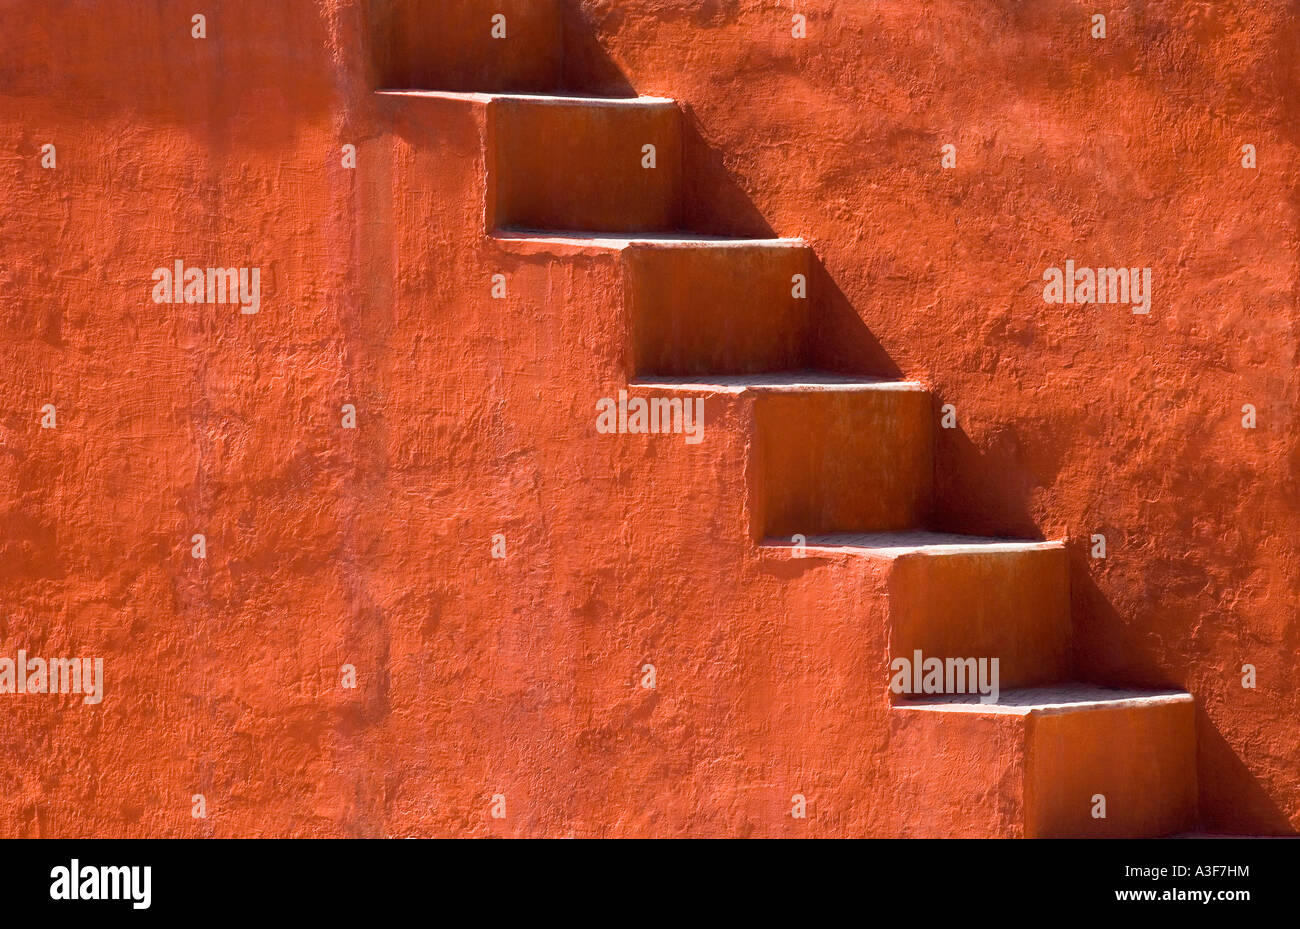 Steps on a building, Jantar Mantar, New Delhi, India Stock Photo